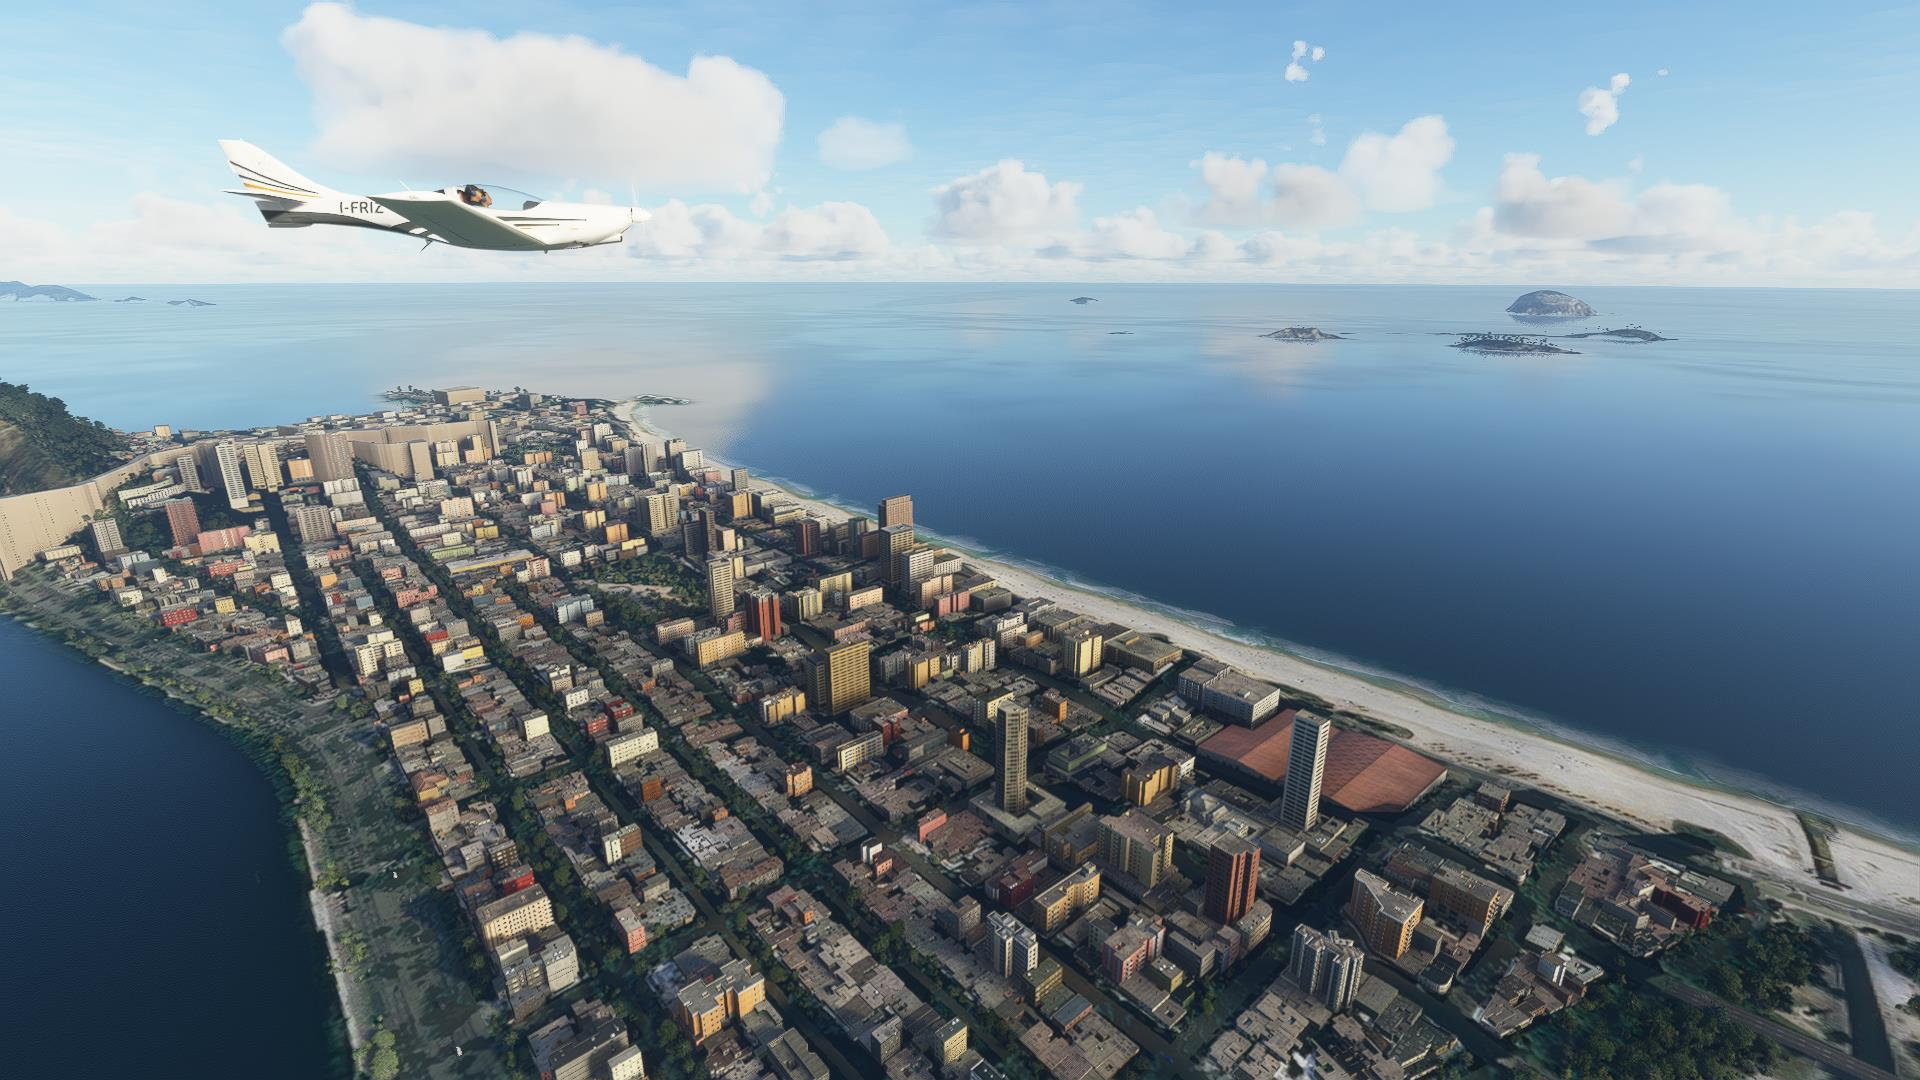 https://vivendobyte.blob.core.windows.net/57793/Microsoft Flight Simulator 13_01_2021 19_53_09.jpg